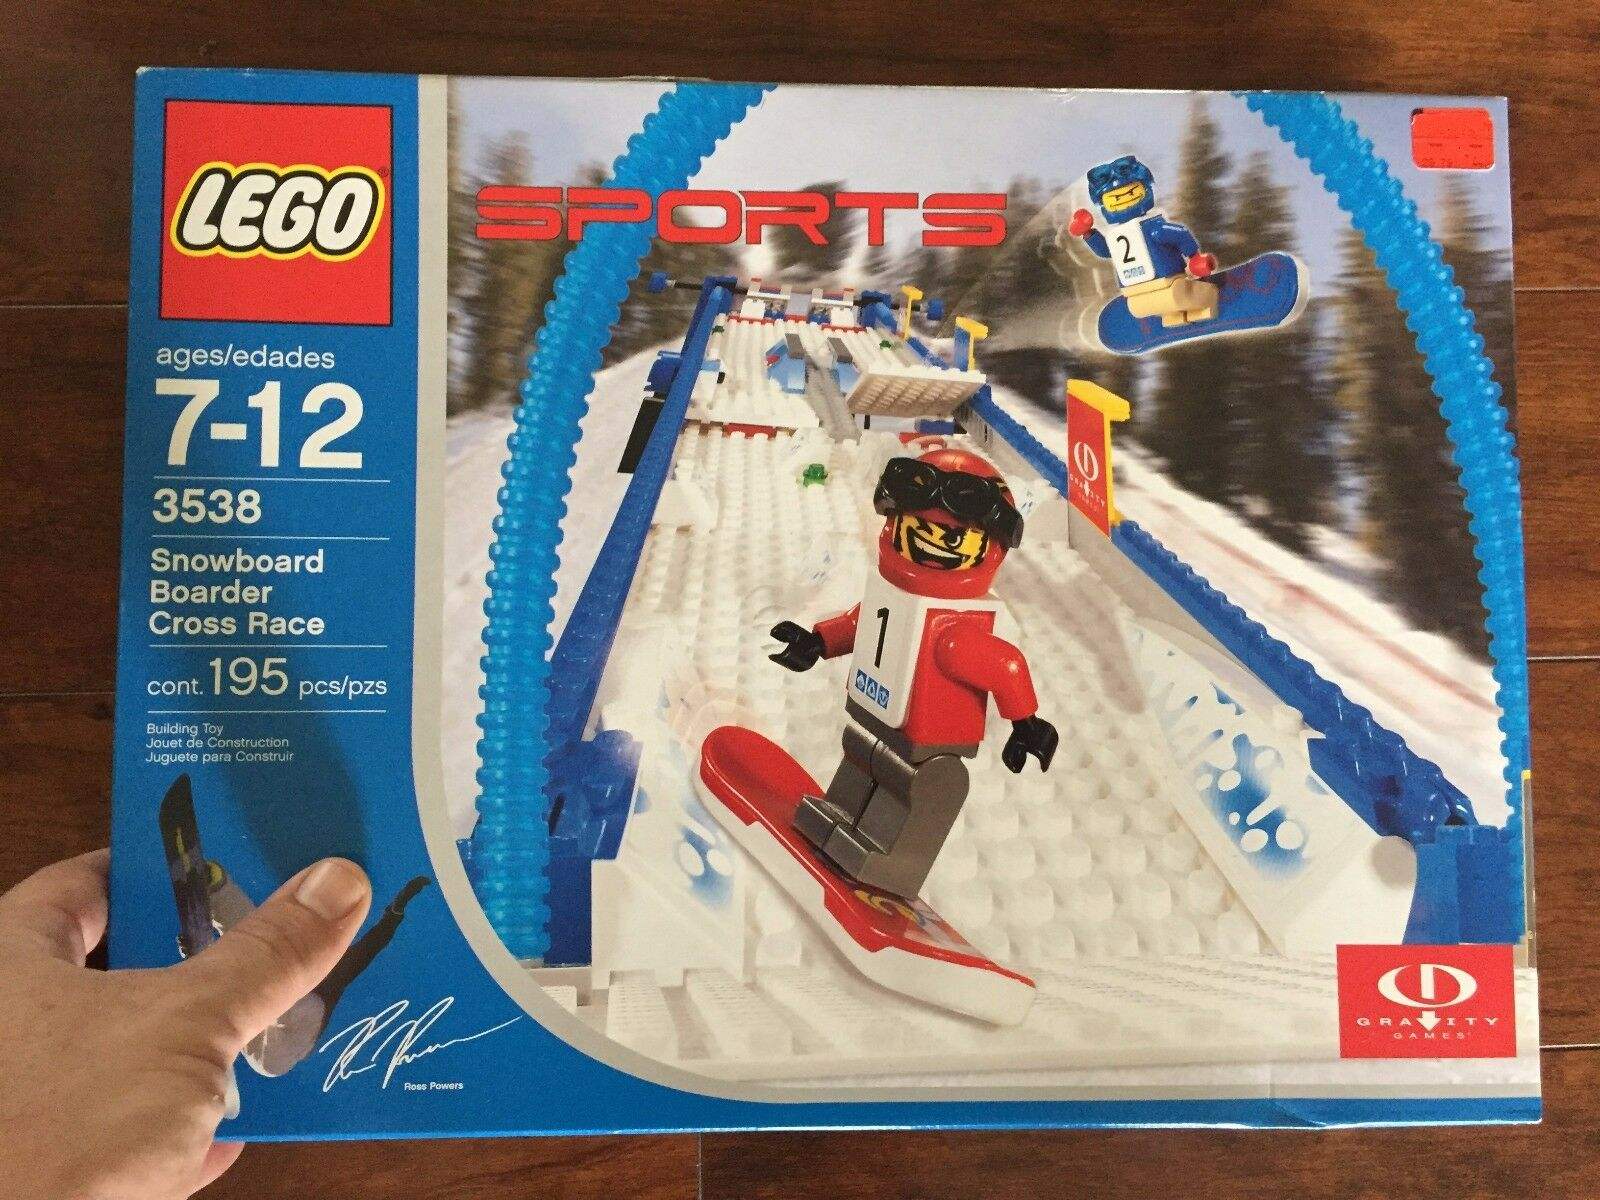 Lego 3538 Snowboard Boarder Cross Race 195 Piece Sports Gravity Games VERY RARE